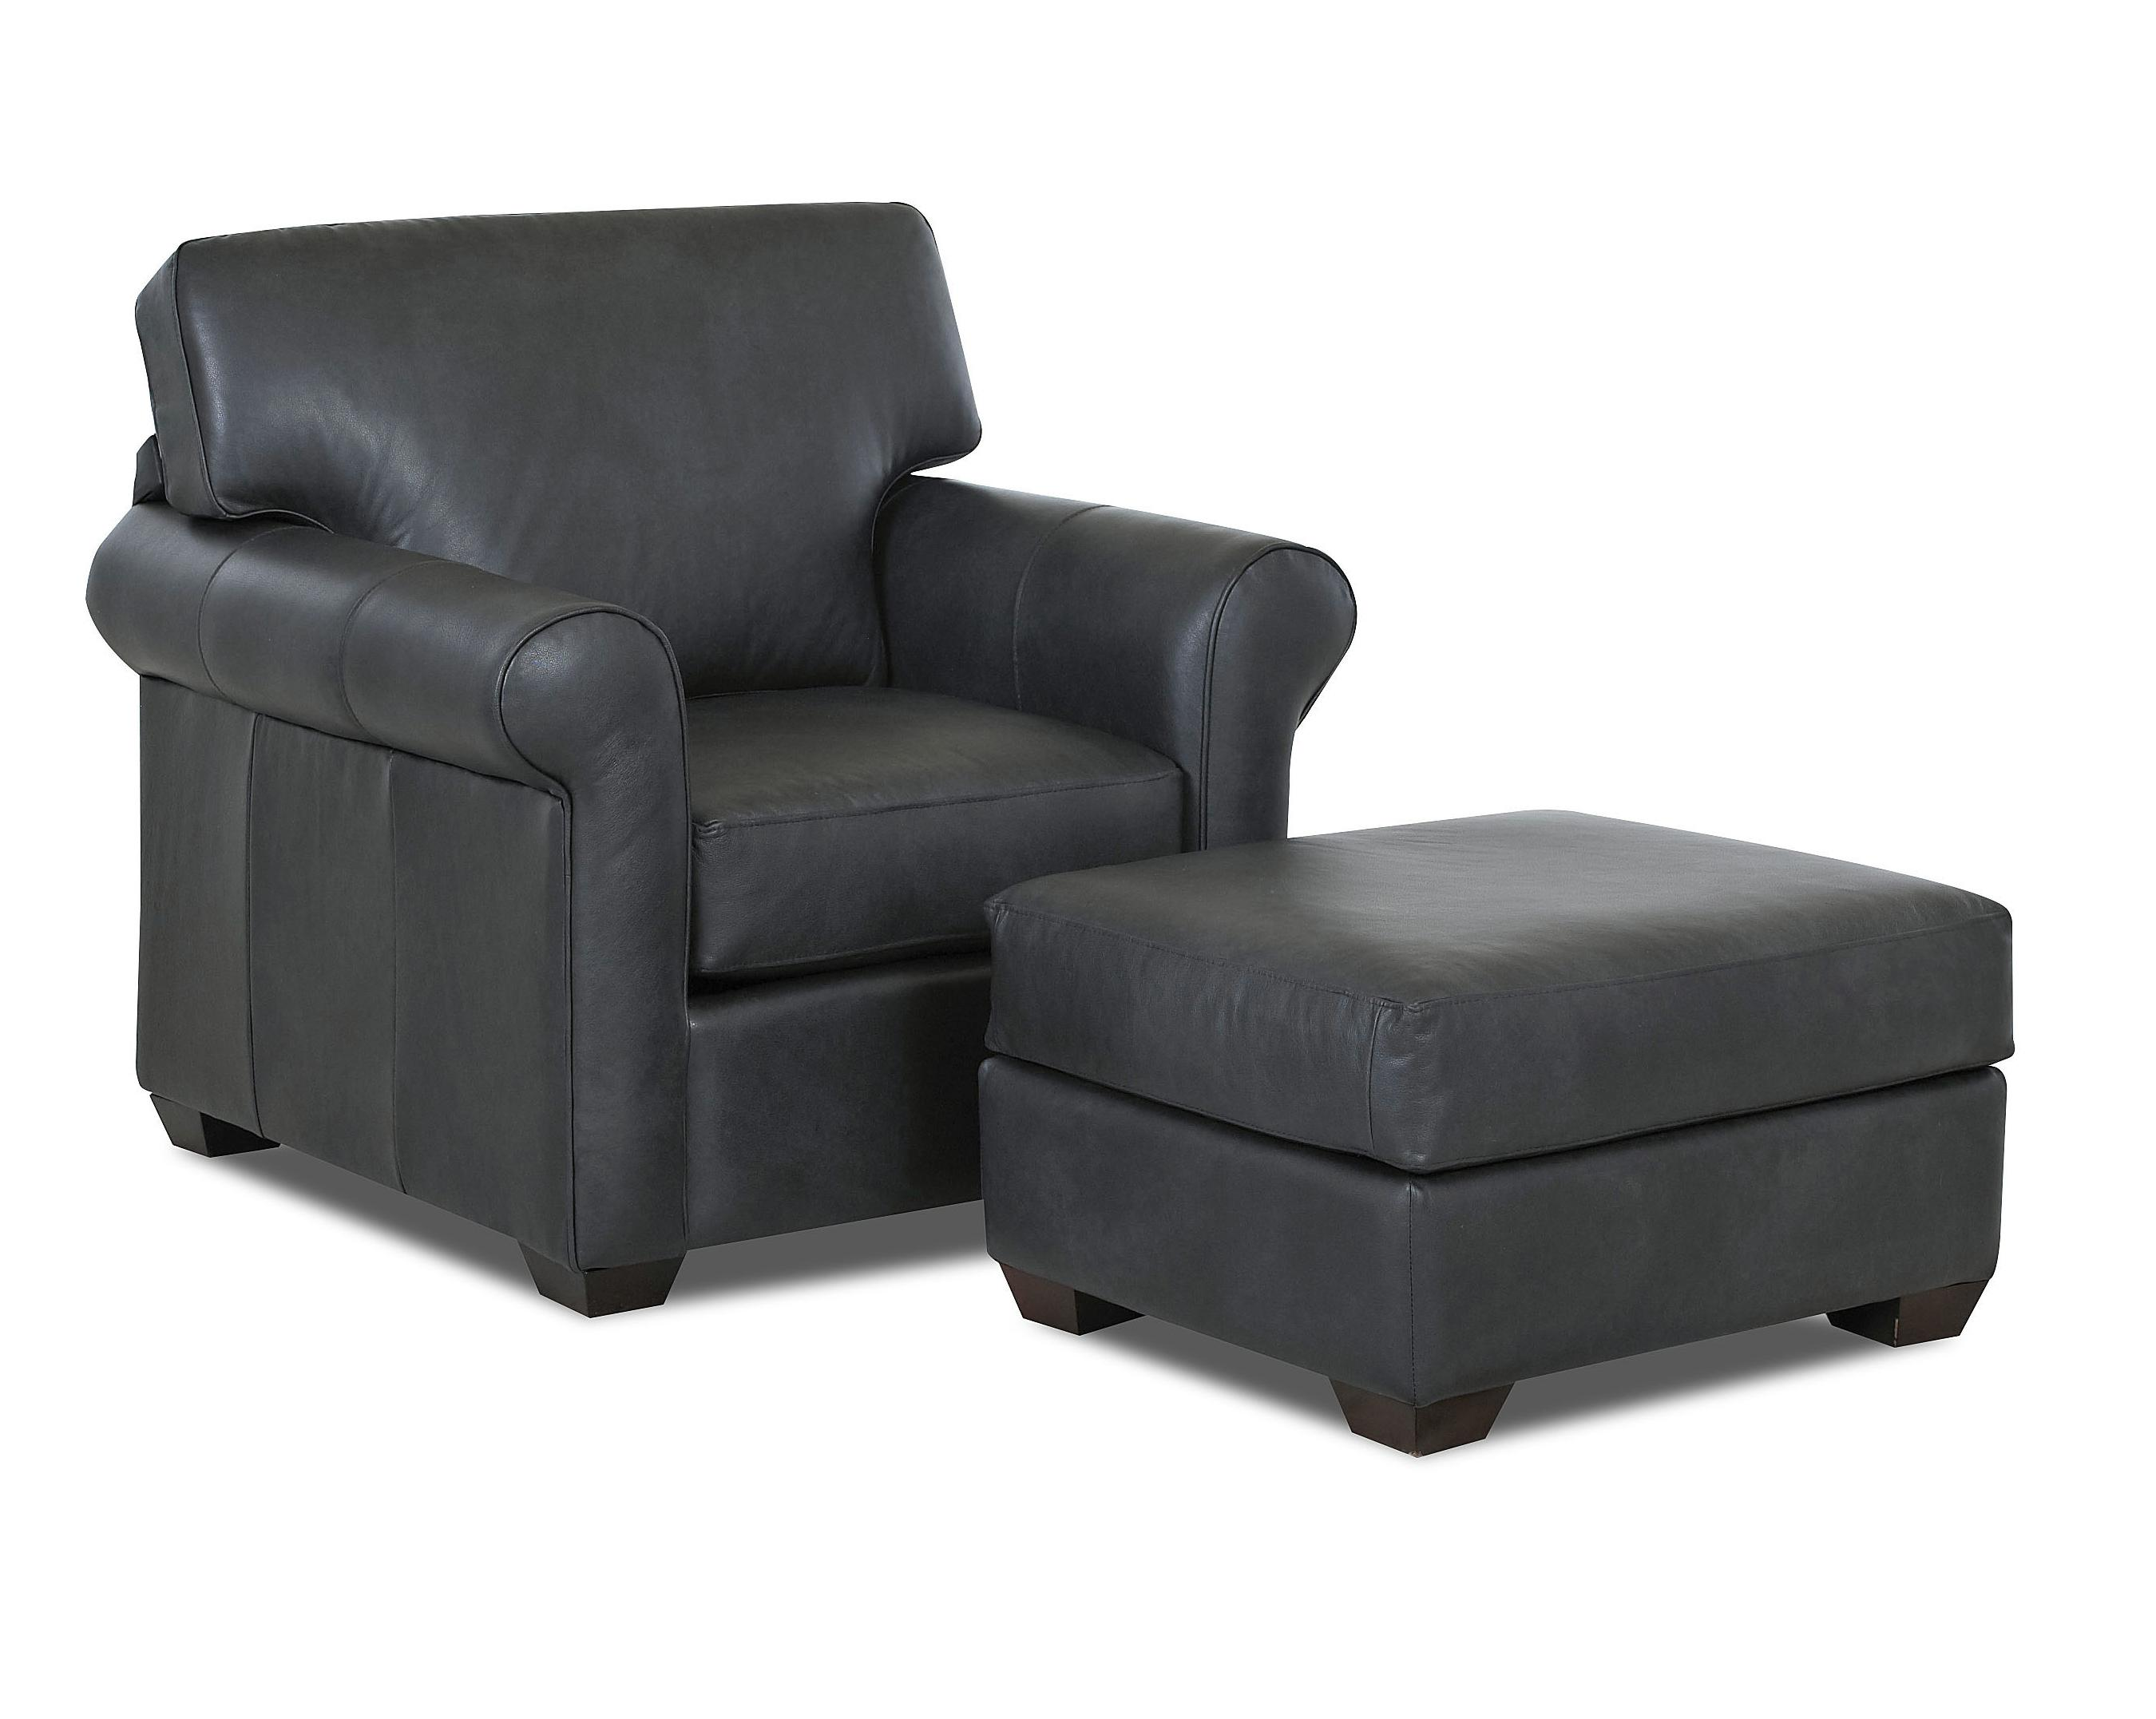 Transitional Chair and Ottoman Set